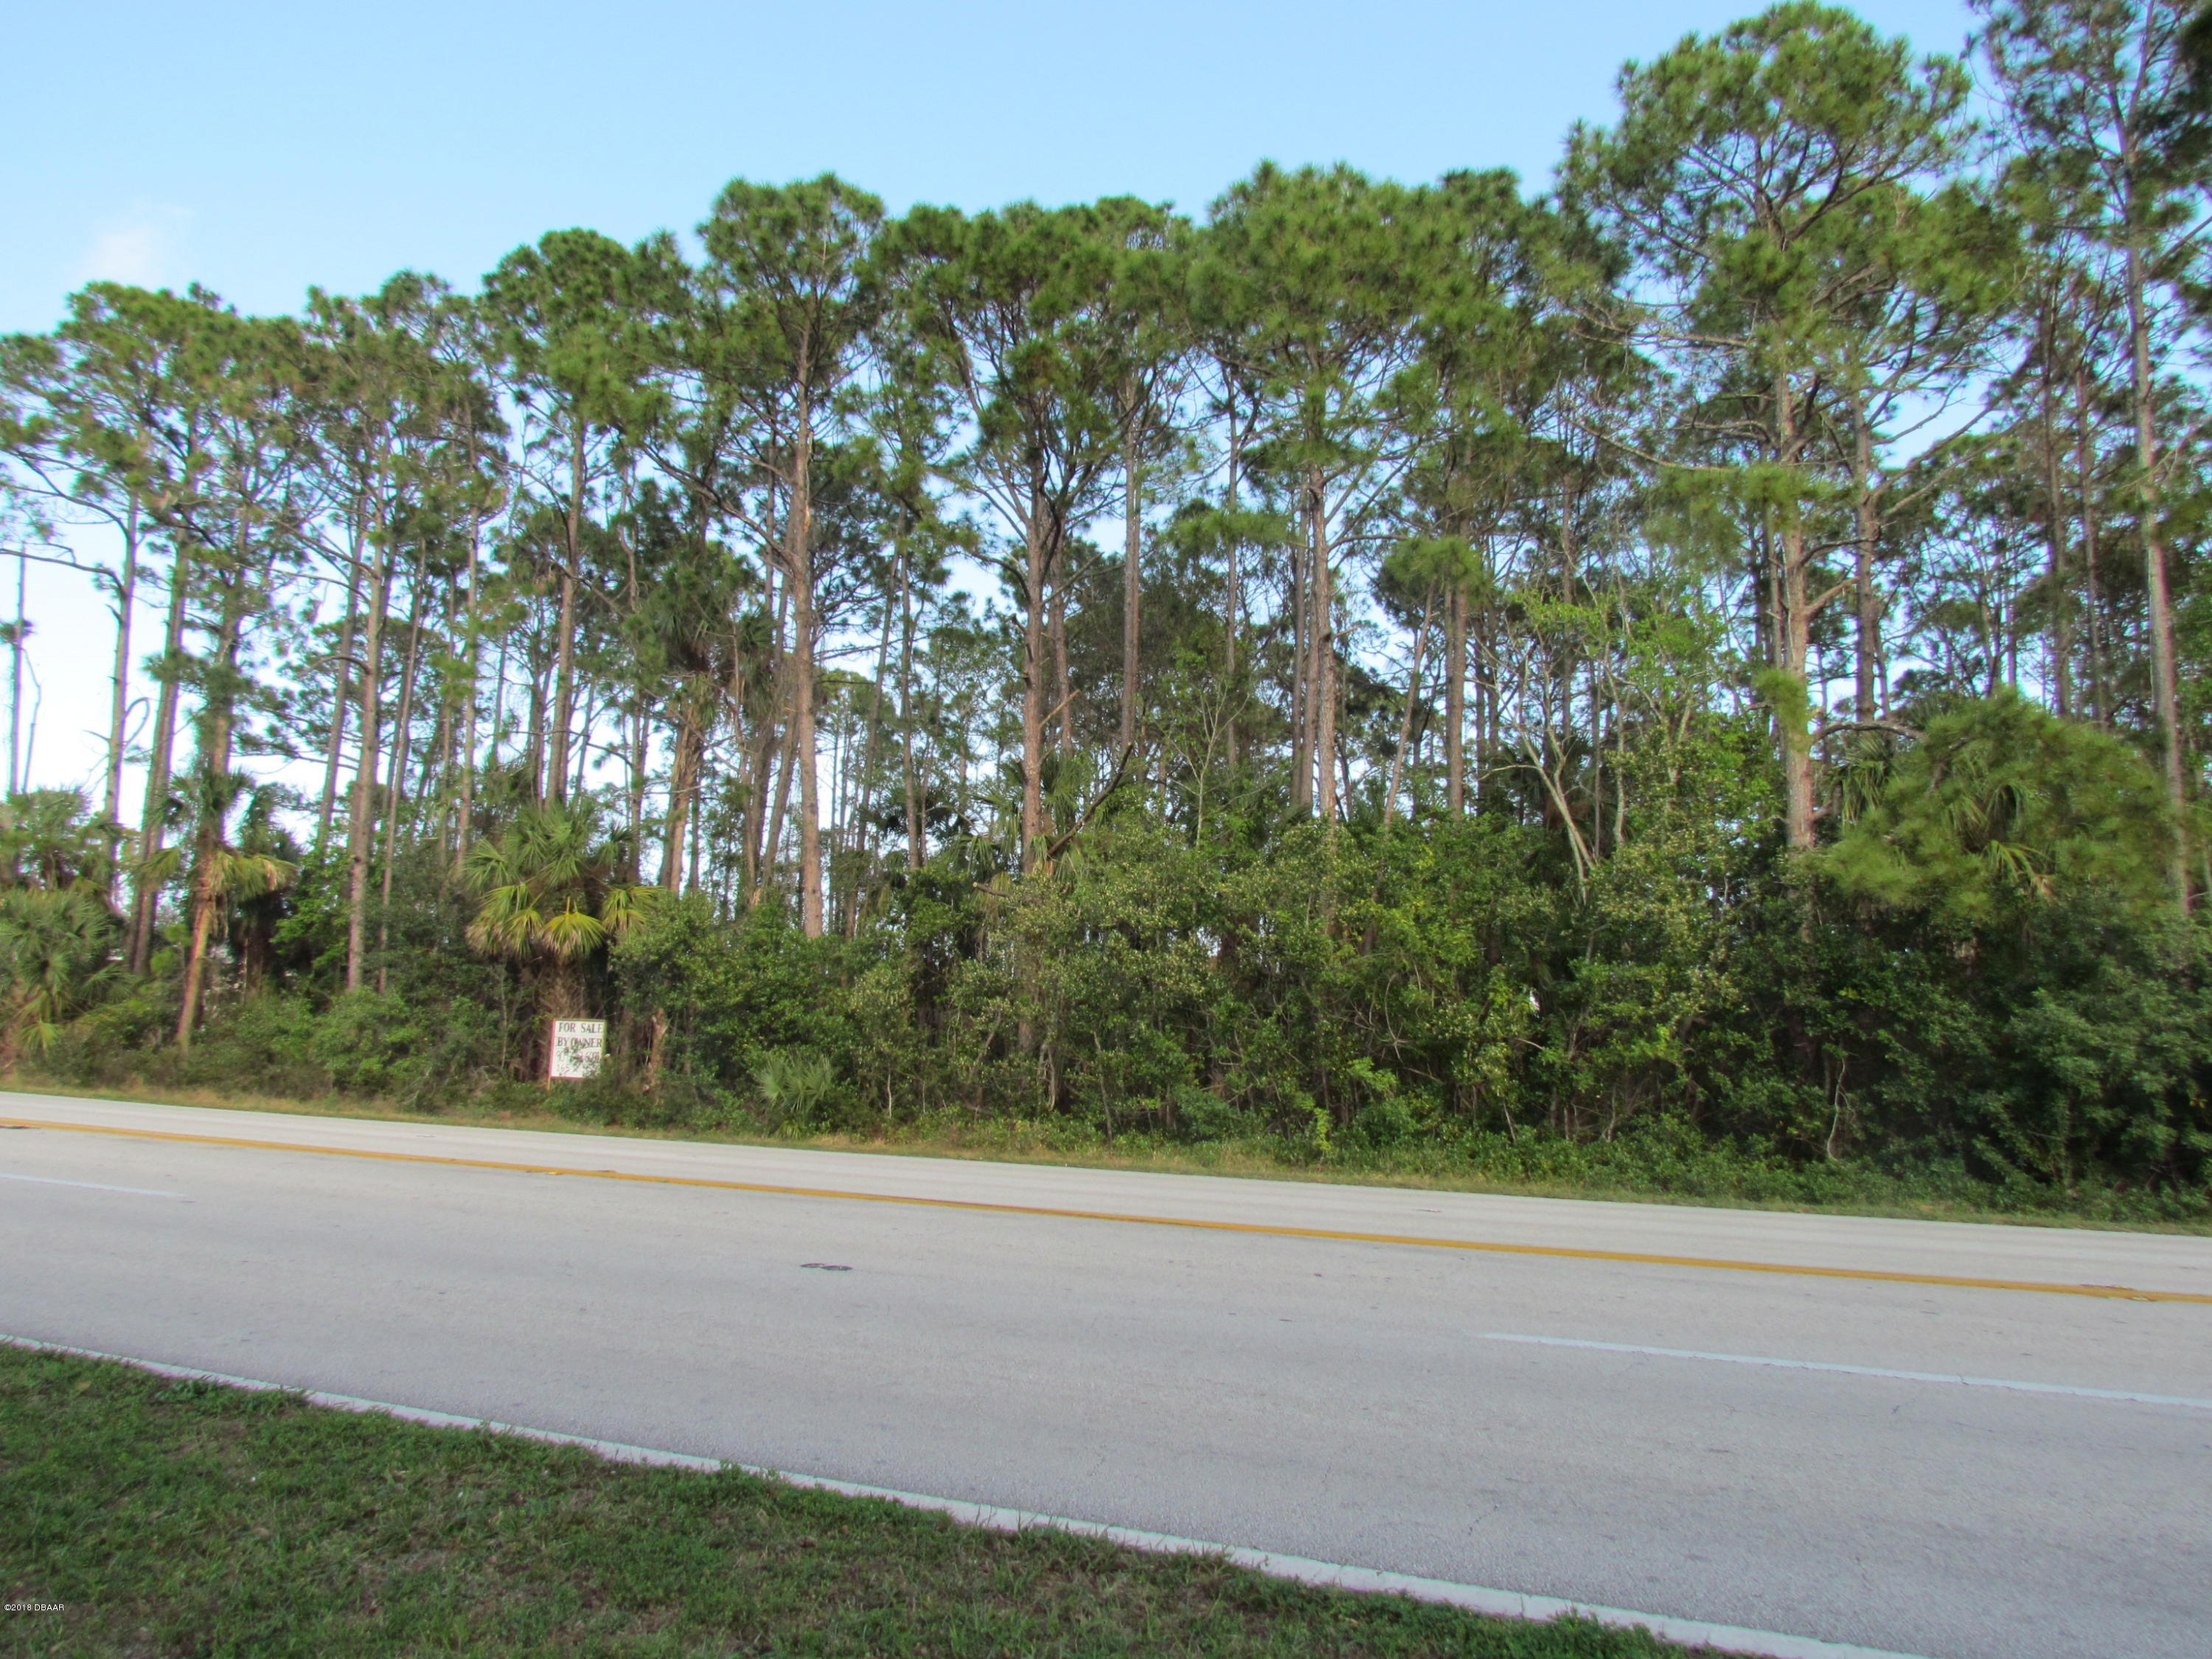 0 S Clyde Morris Boulevard, one of homes for sale in South Daytona